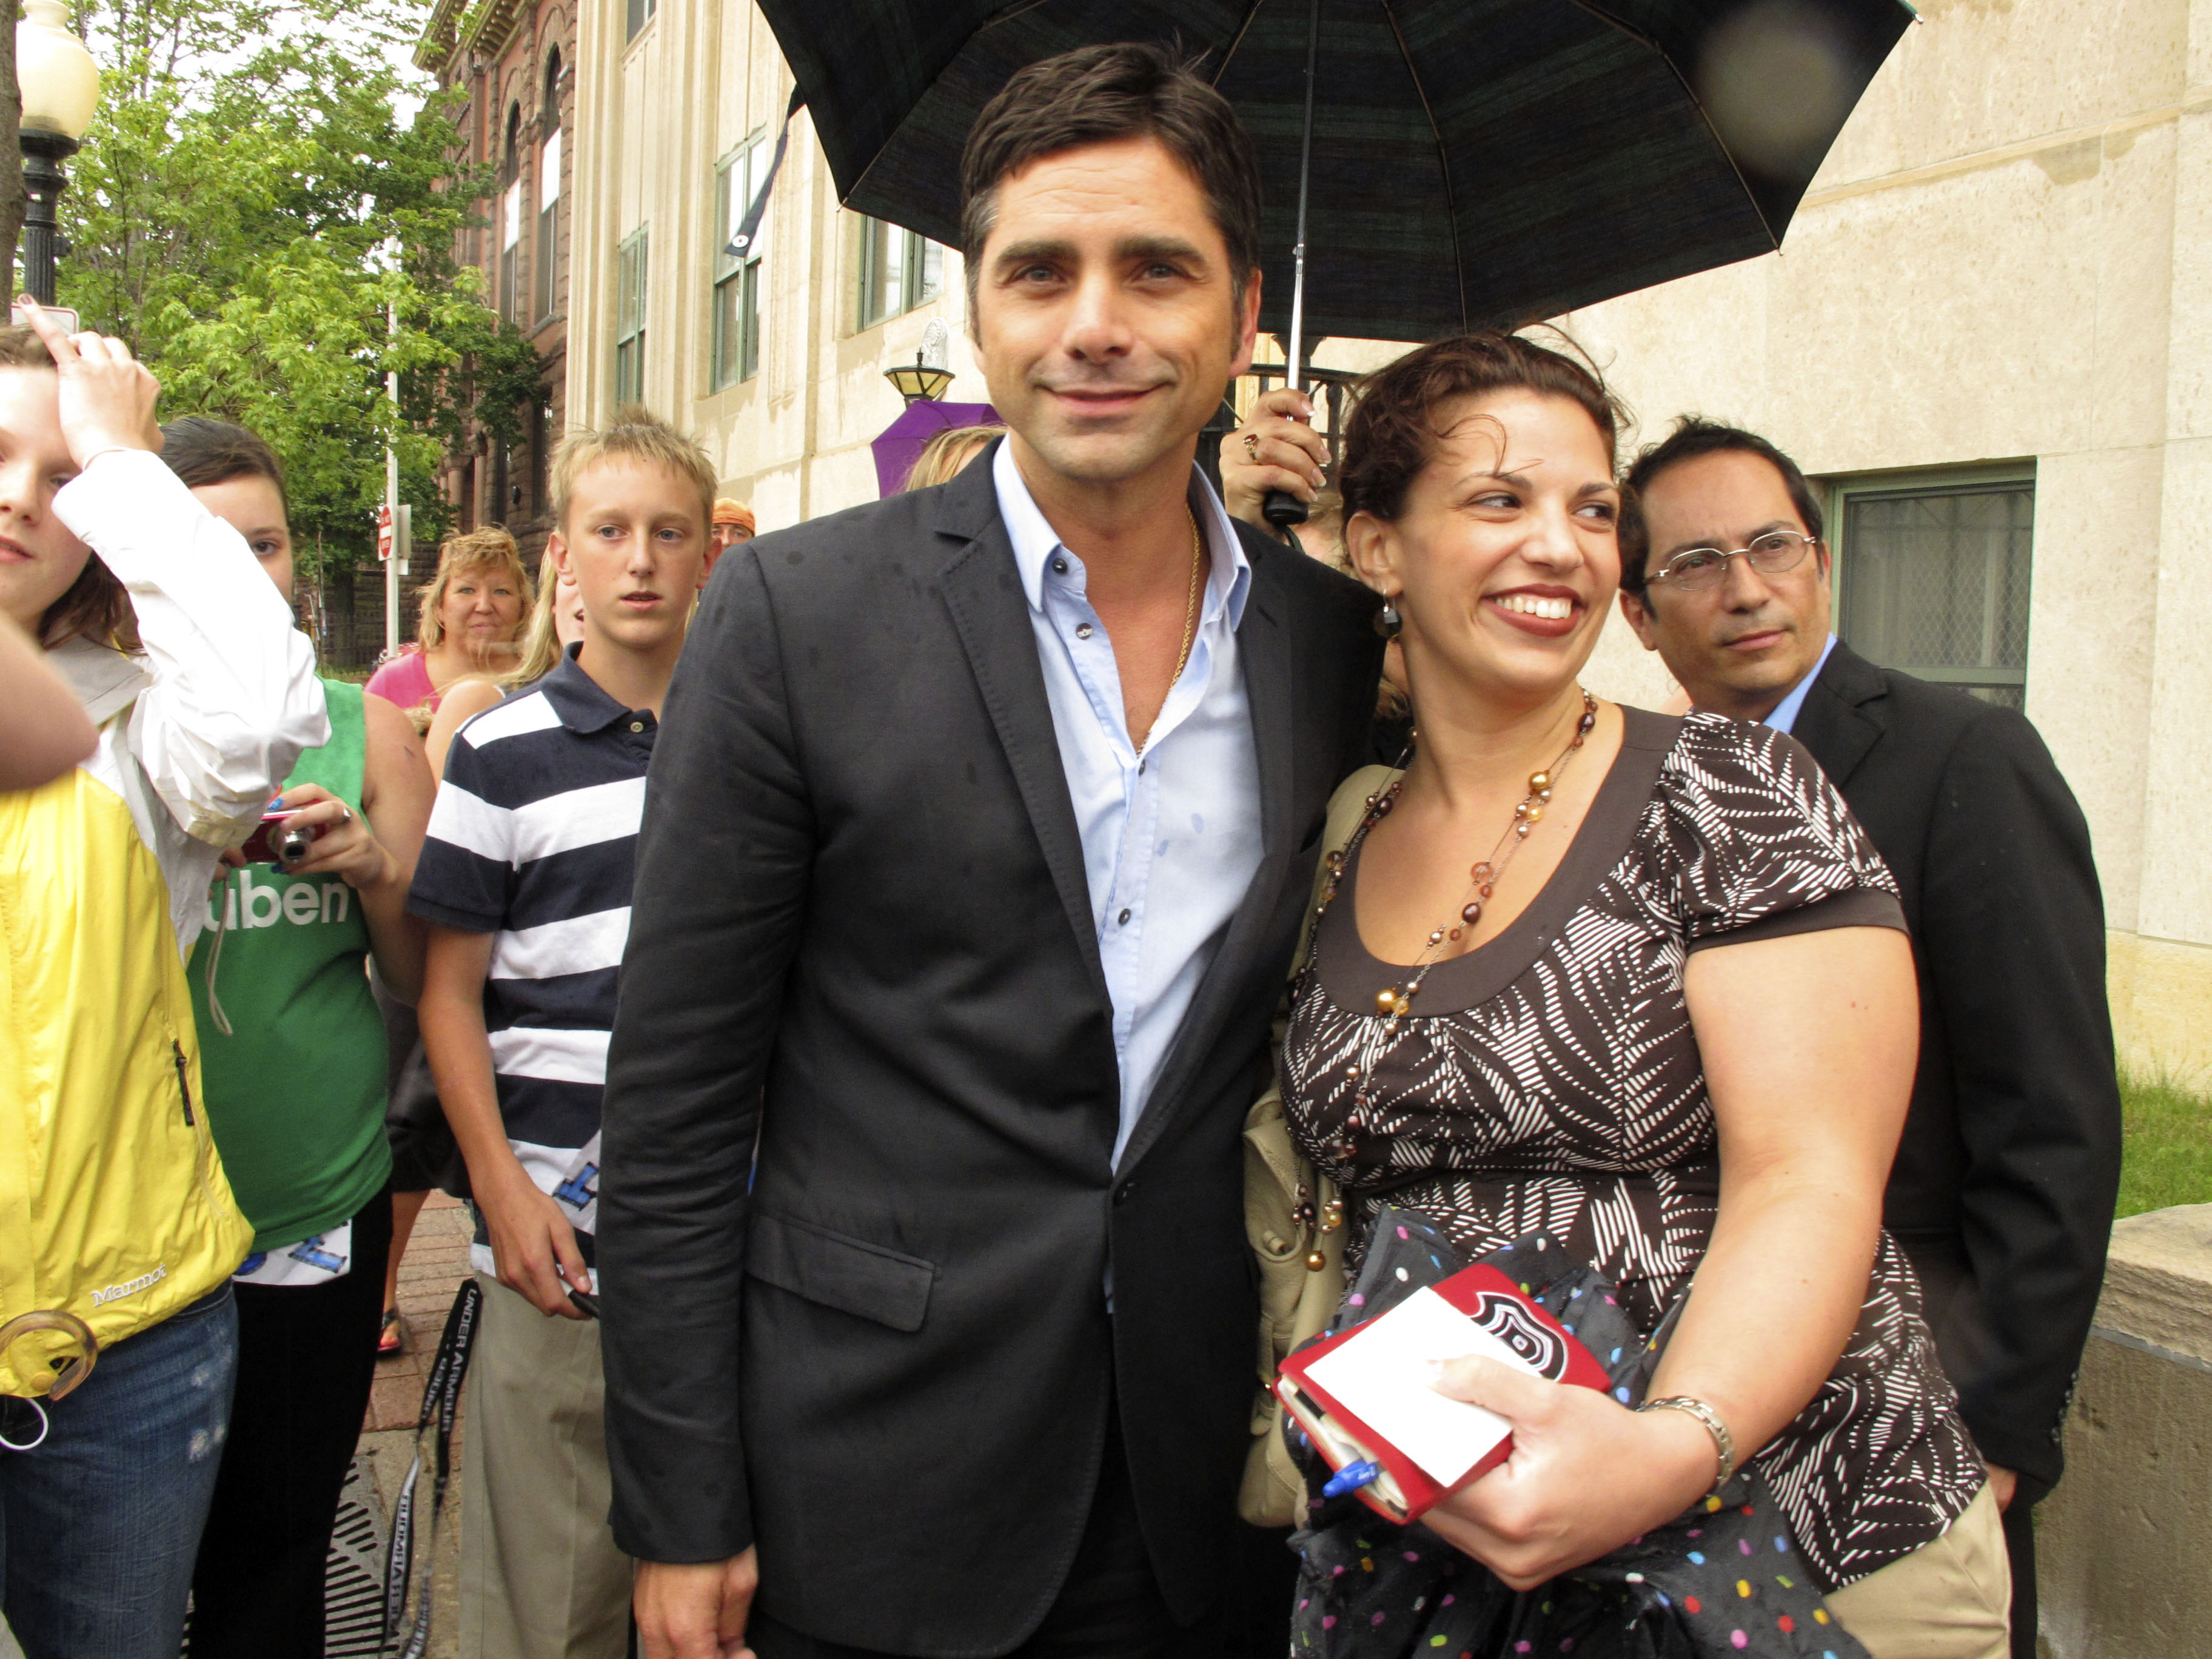 Actor John Stamos greets fans on Wednesday outside the federal courthouse in Marquette, Michigan, during the trial of two people charged with trying t...